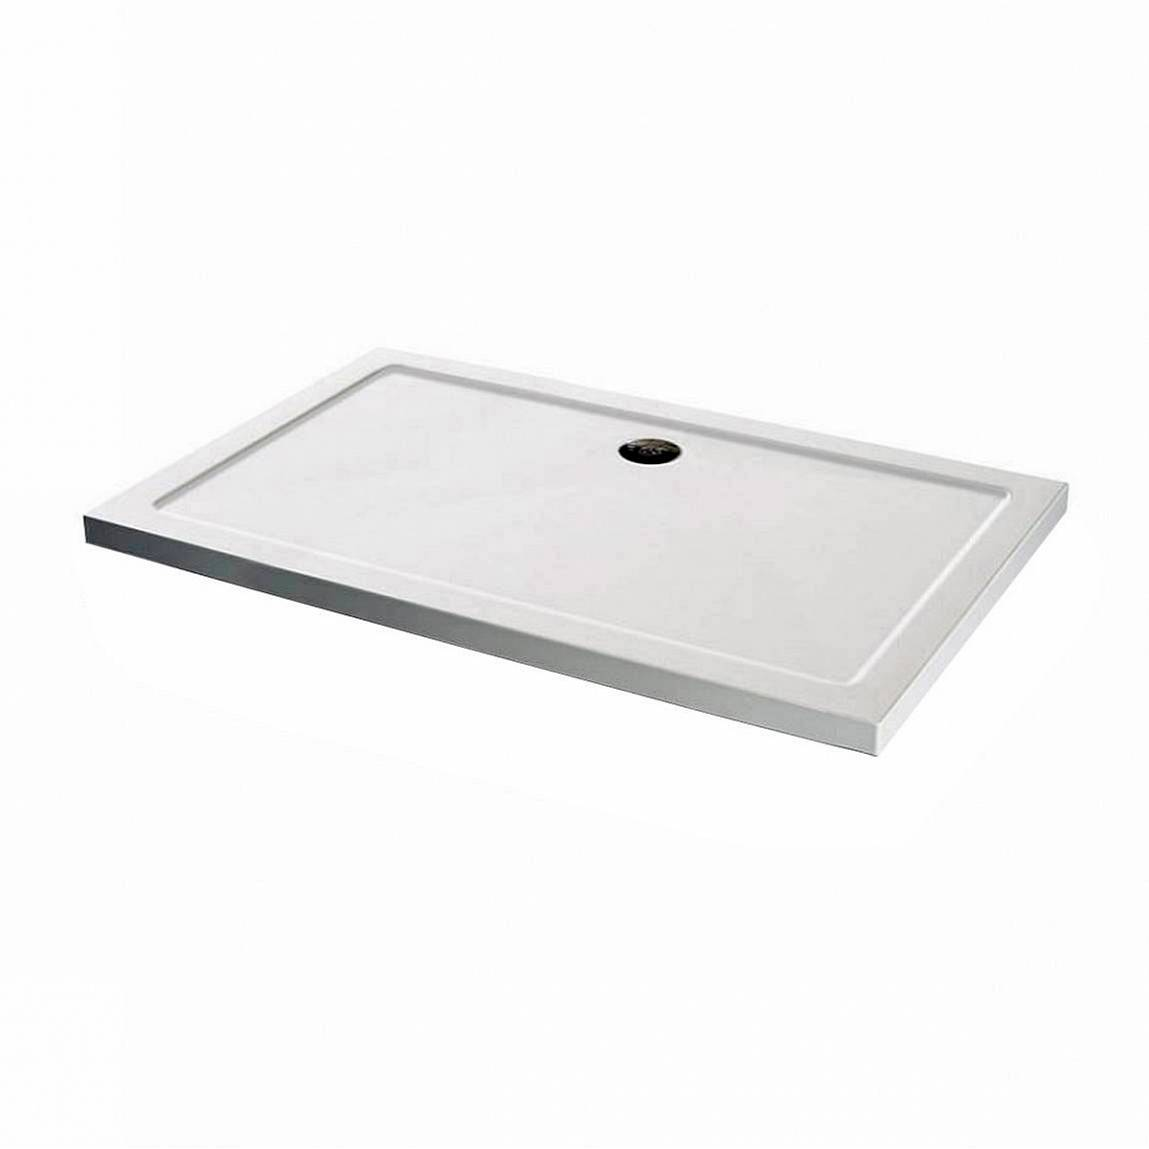 Image of Rectangular Stone Shower Tray 800 x 700